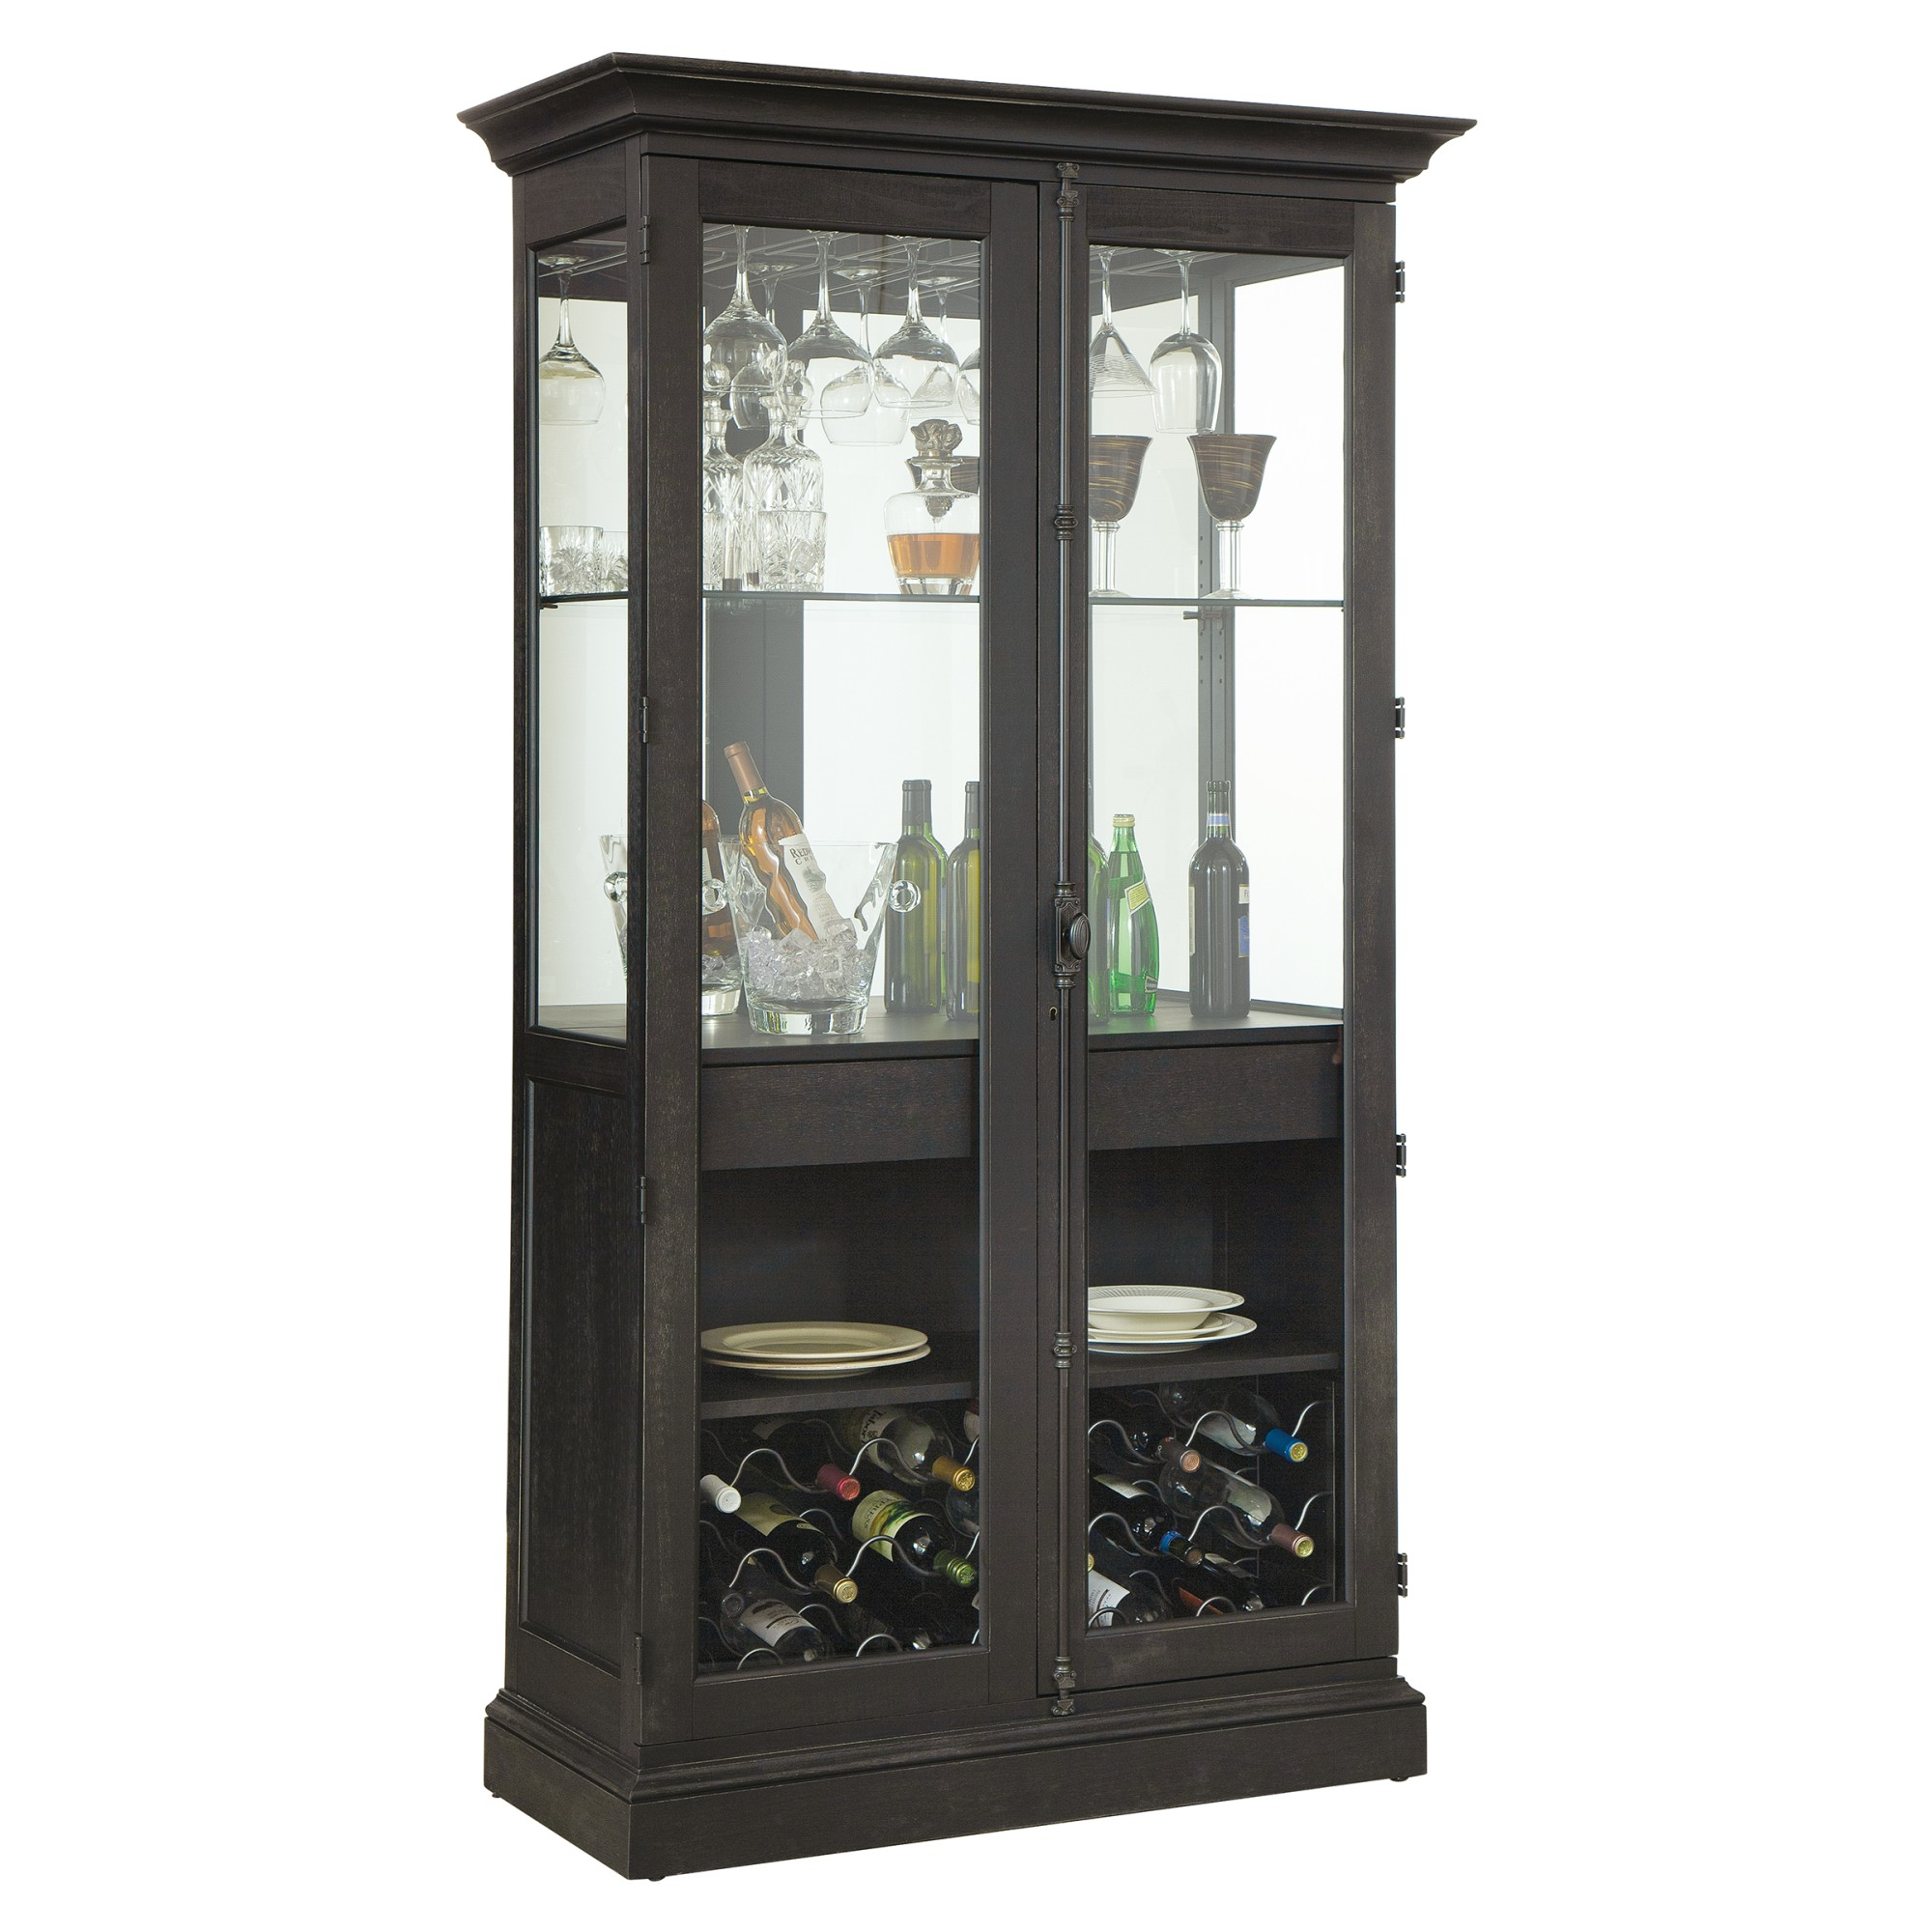 Image for 690-044 Socialize IV Wine & Bar Cabinet from Howard Miller Official Website